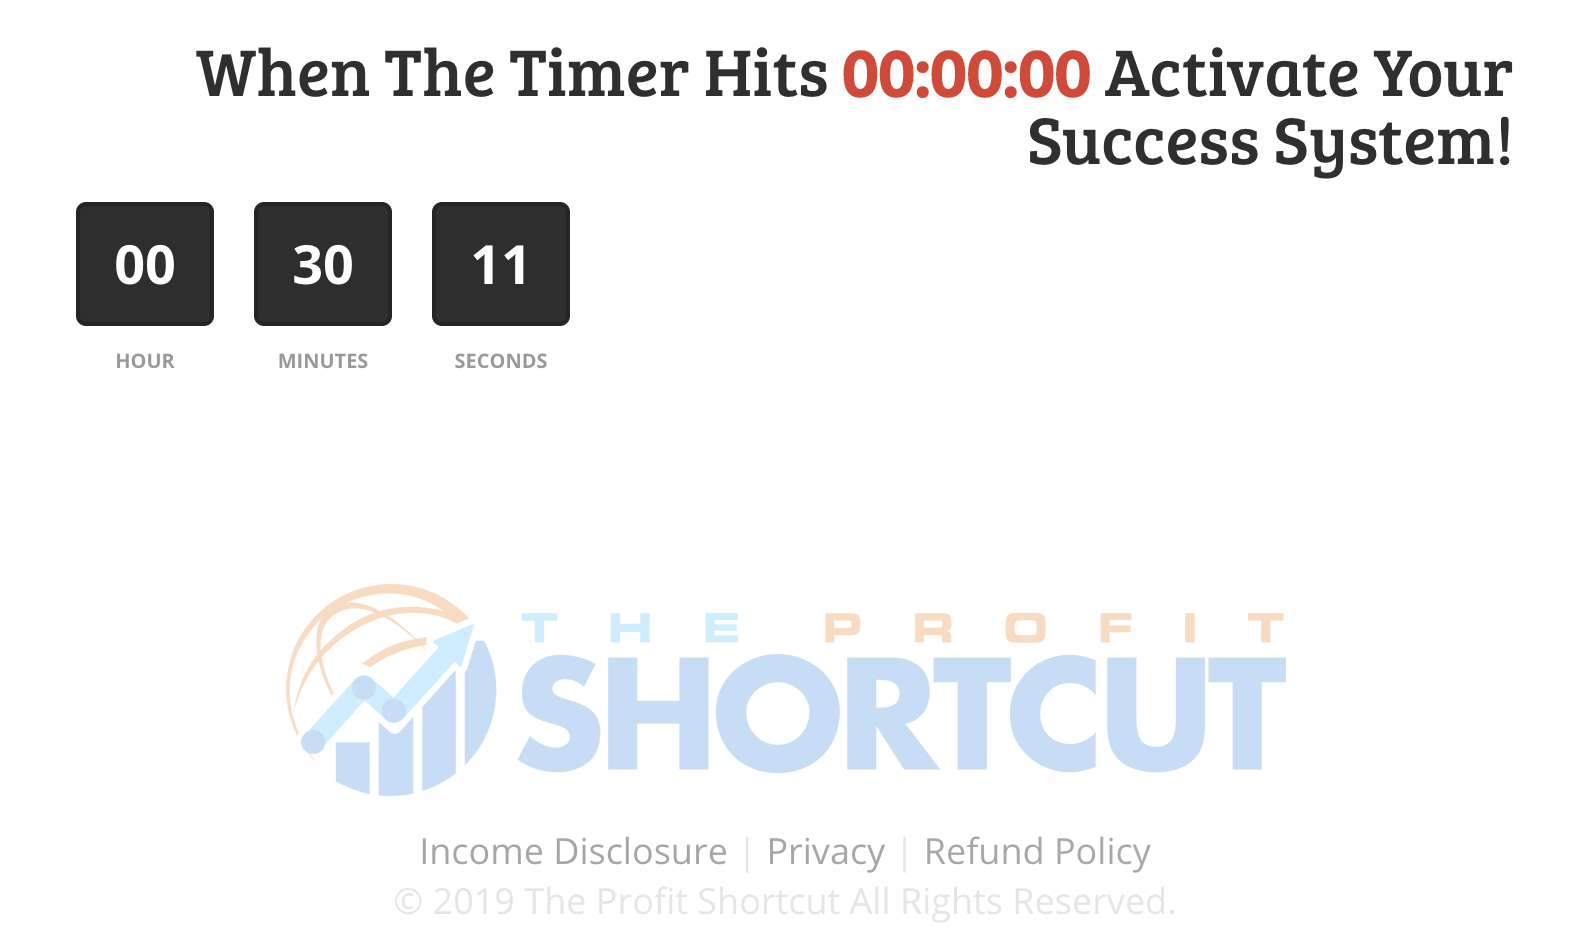 Is The Profit Shortcut A Scam? How much can you make with it